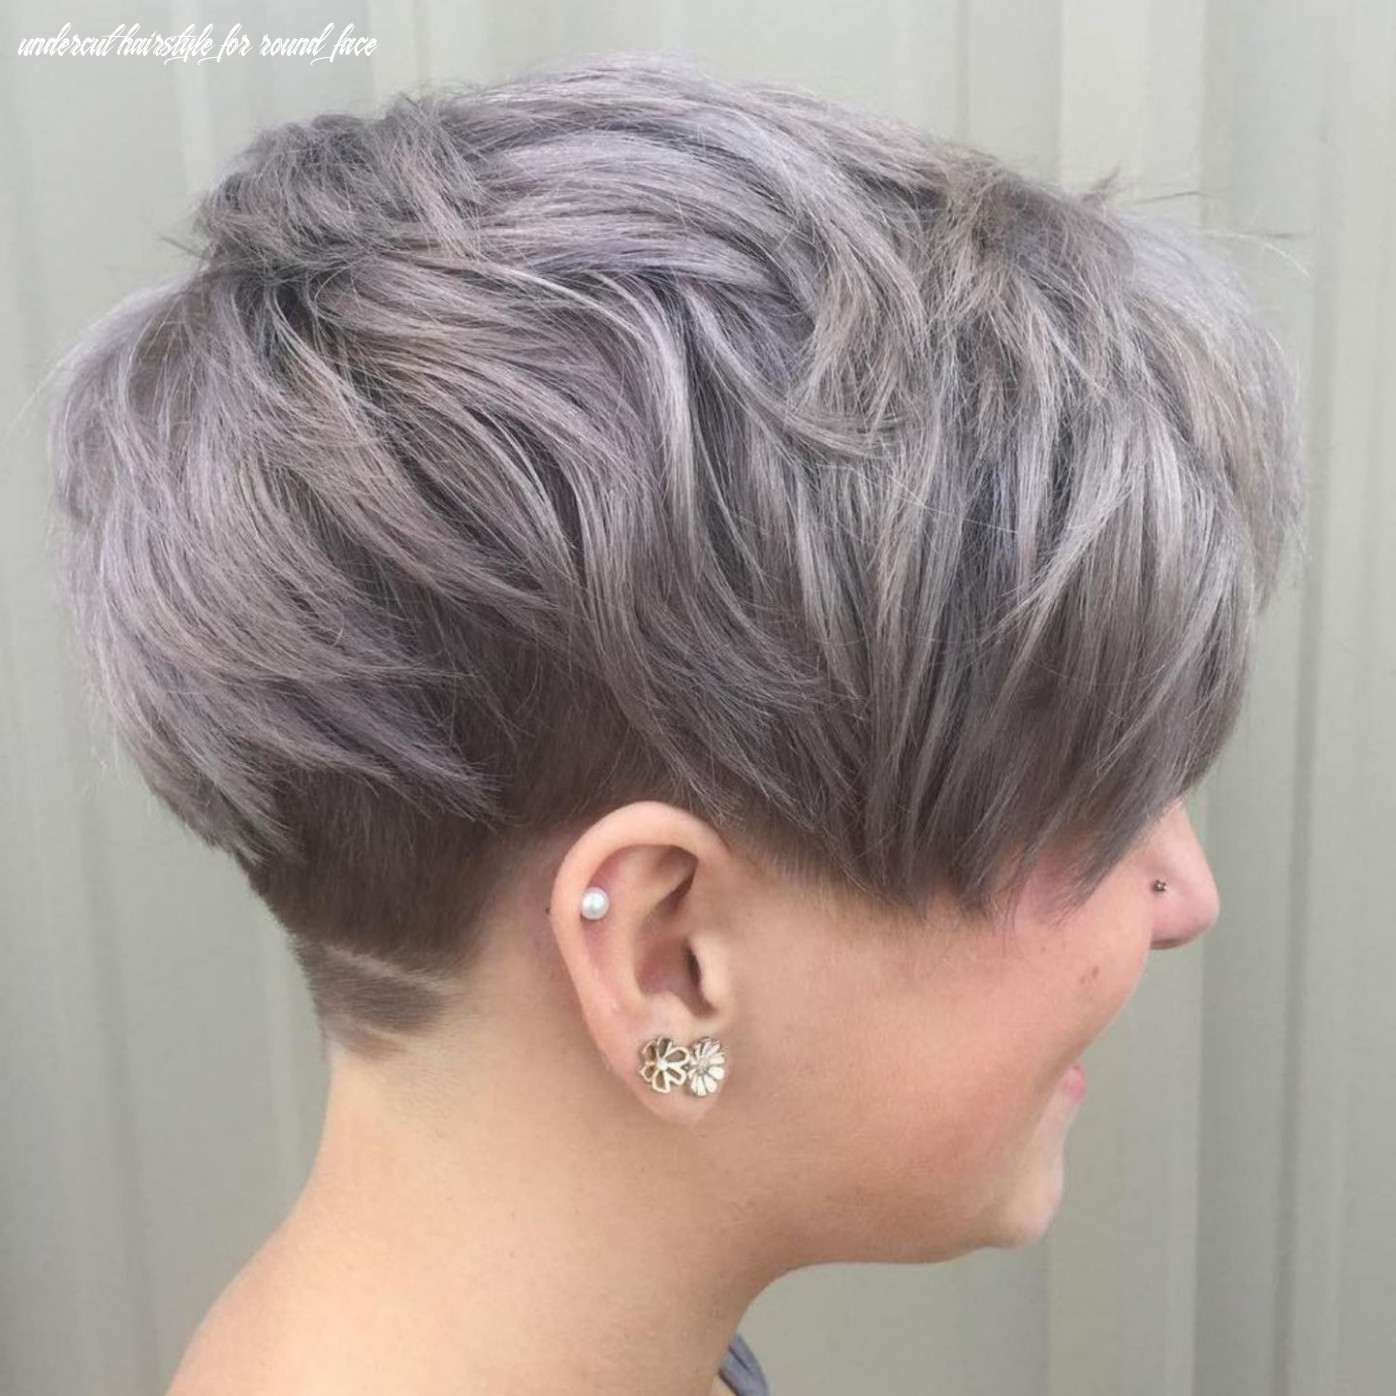 Pin on short hair undercut hairstyle for round face